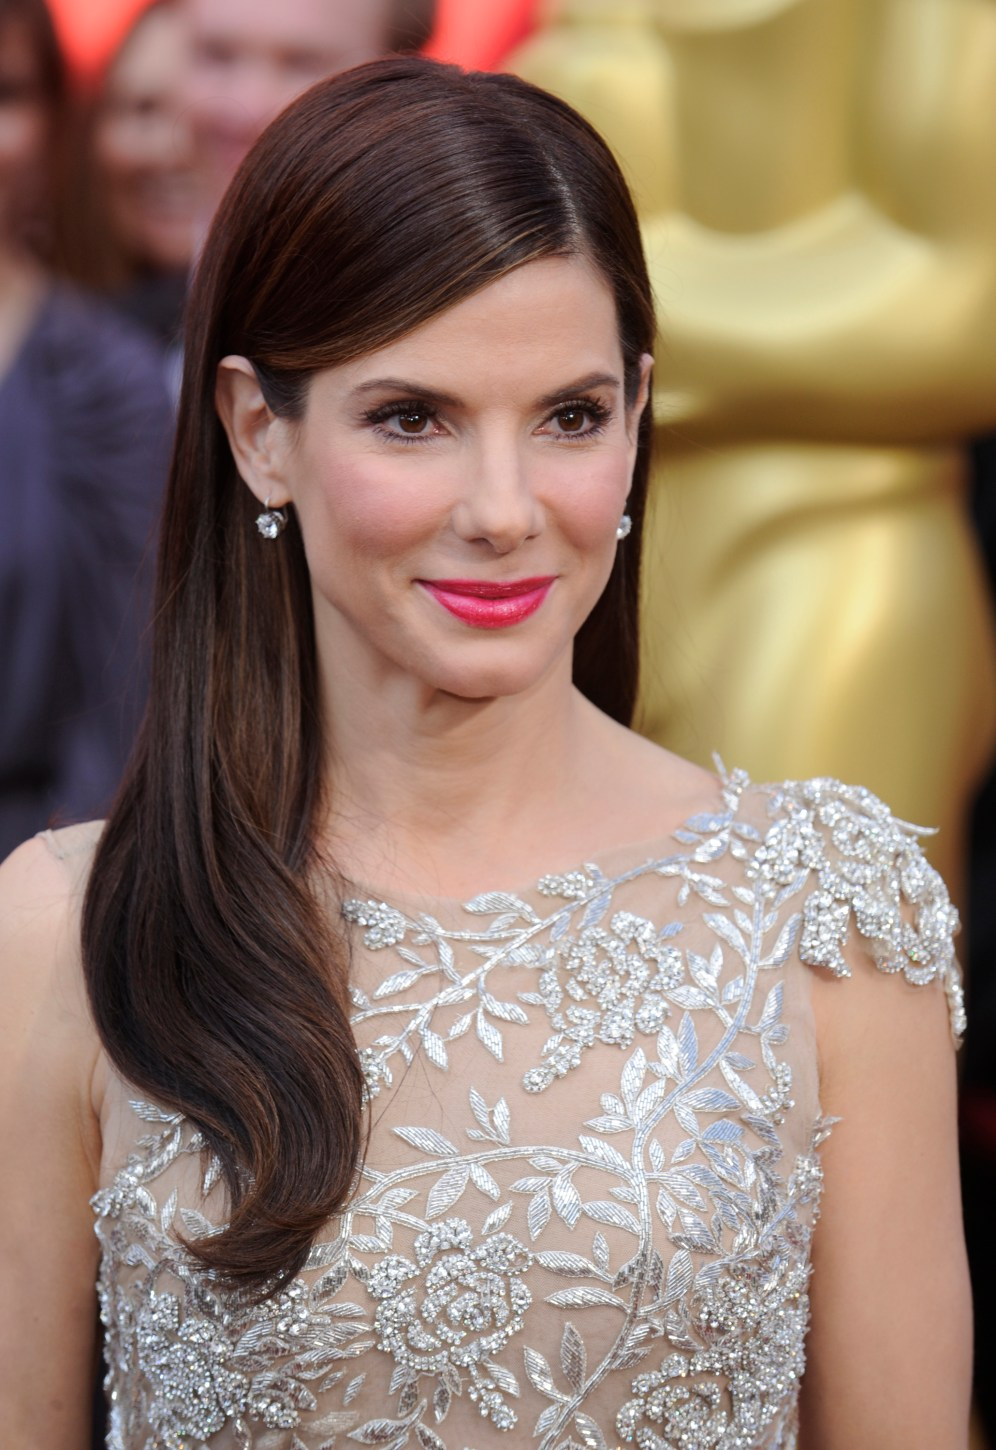 Sandra Bullock arrives at the 82nd annual Academy Awards in Hollywood on March 7, 2010.